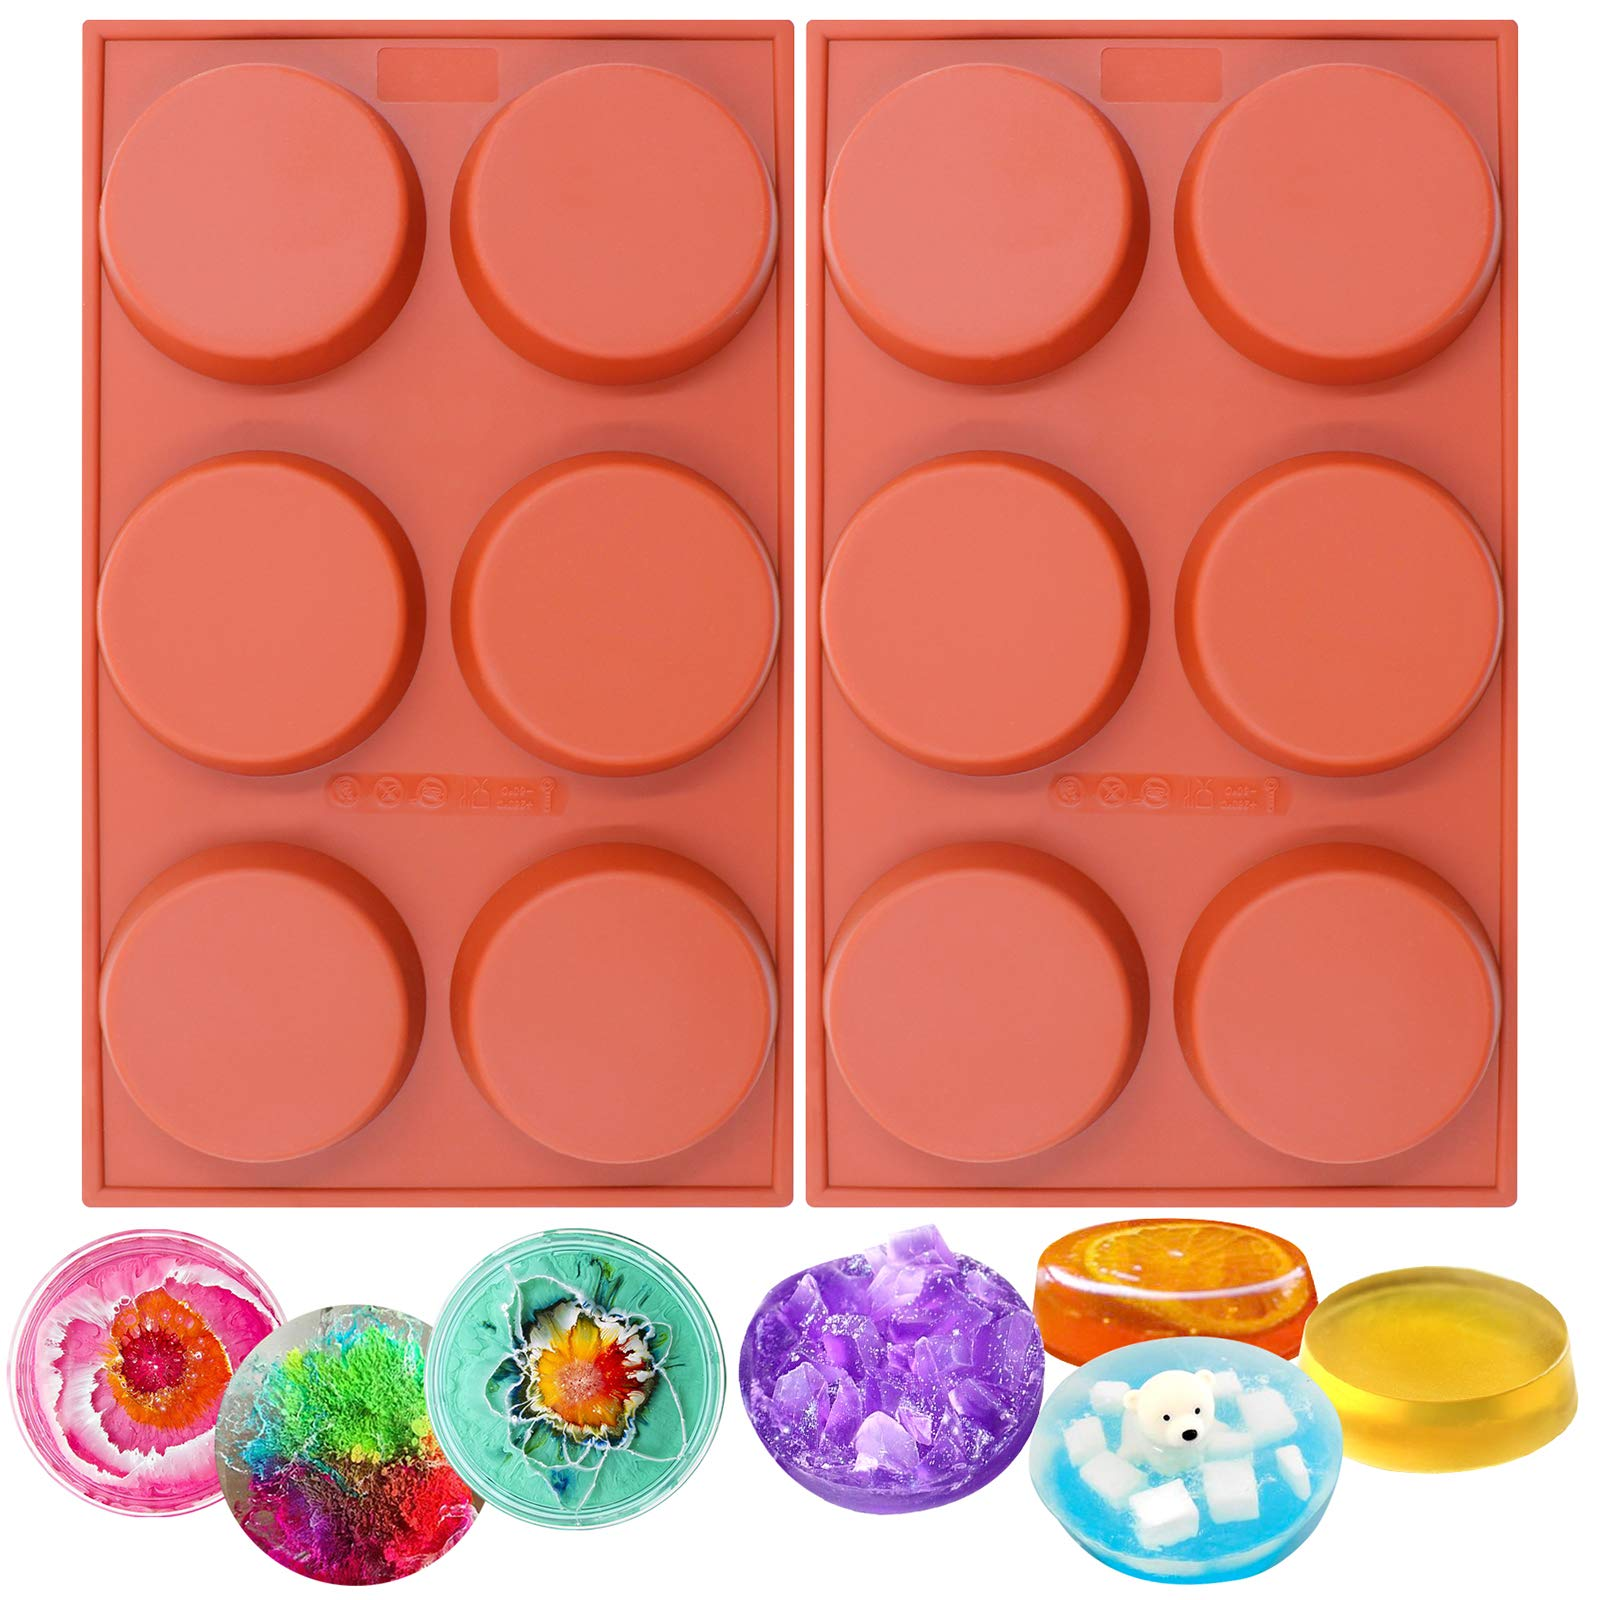 Funshowcase 6-Cavity Mini Disc Cake Pie Custard Tart Resin Coaster Silicone Molds 2-Bundle